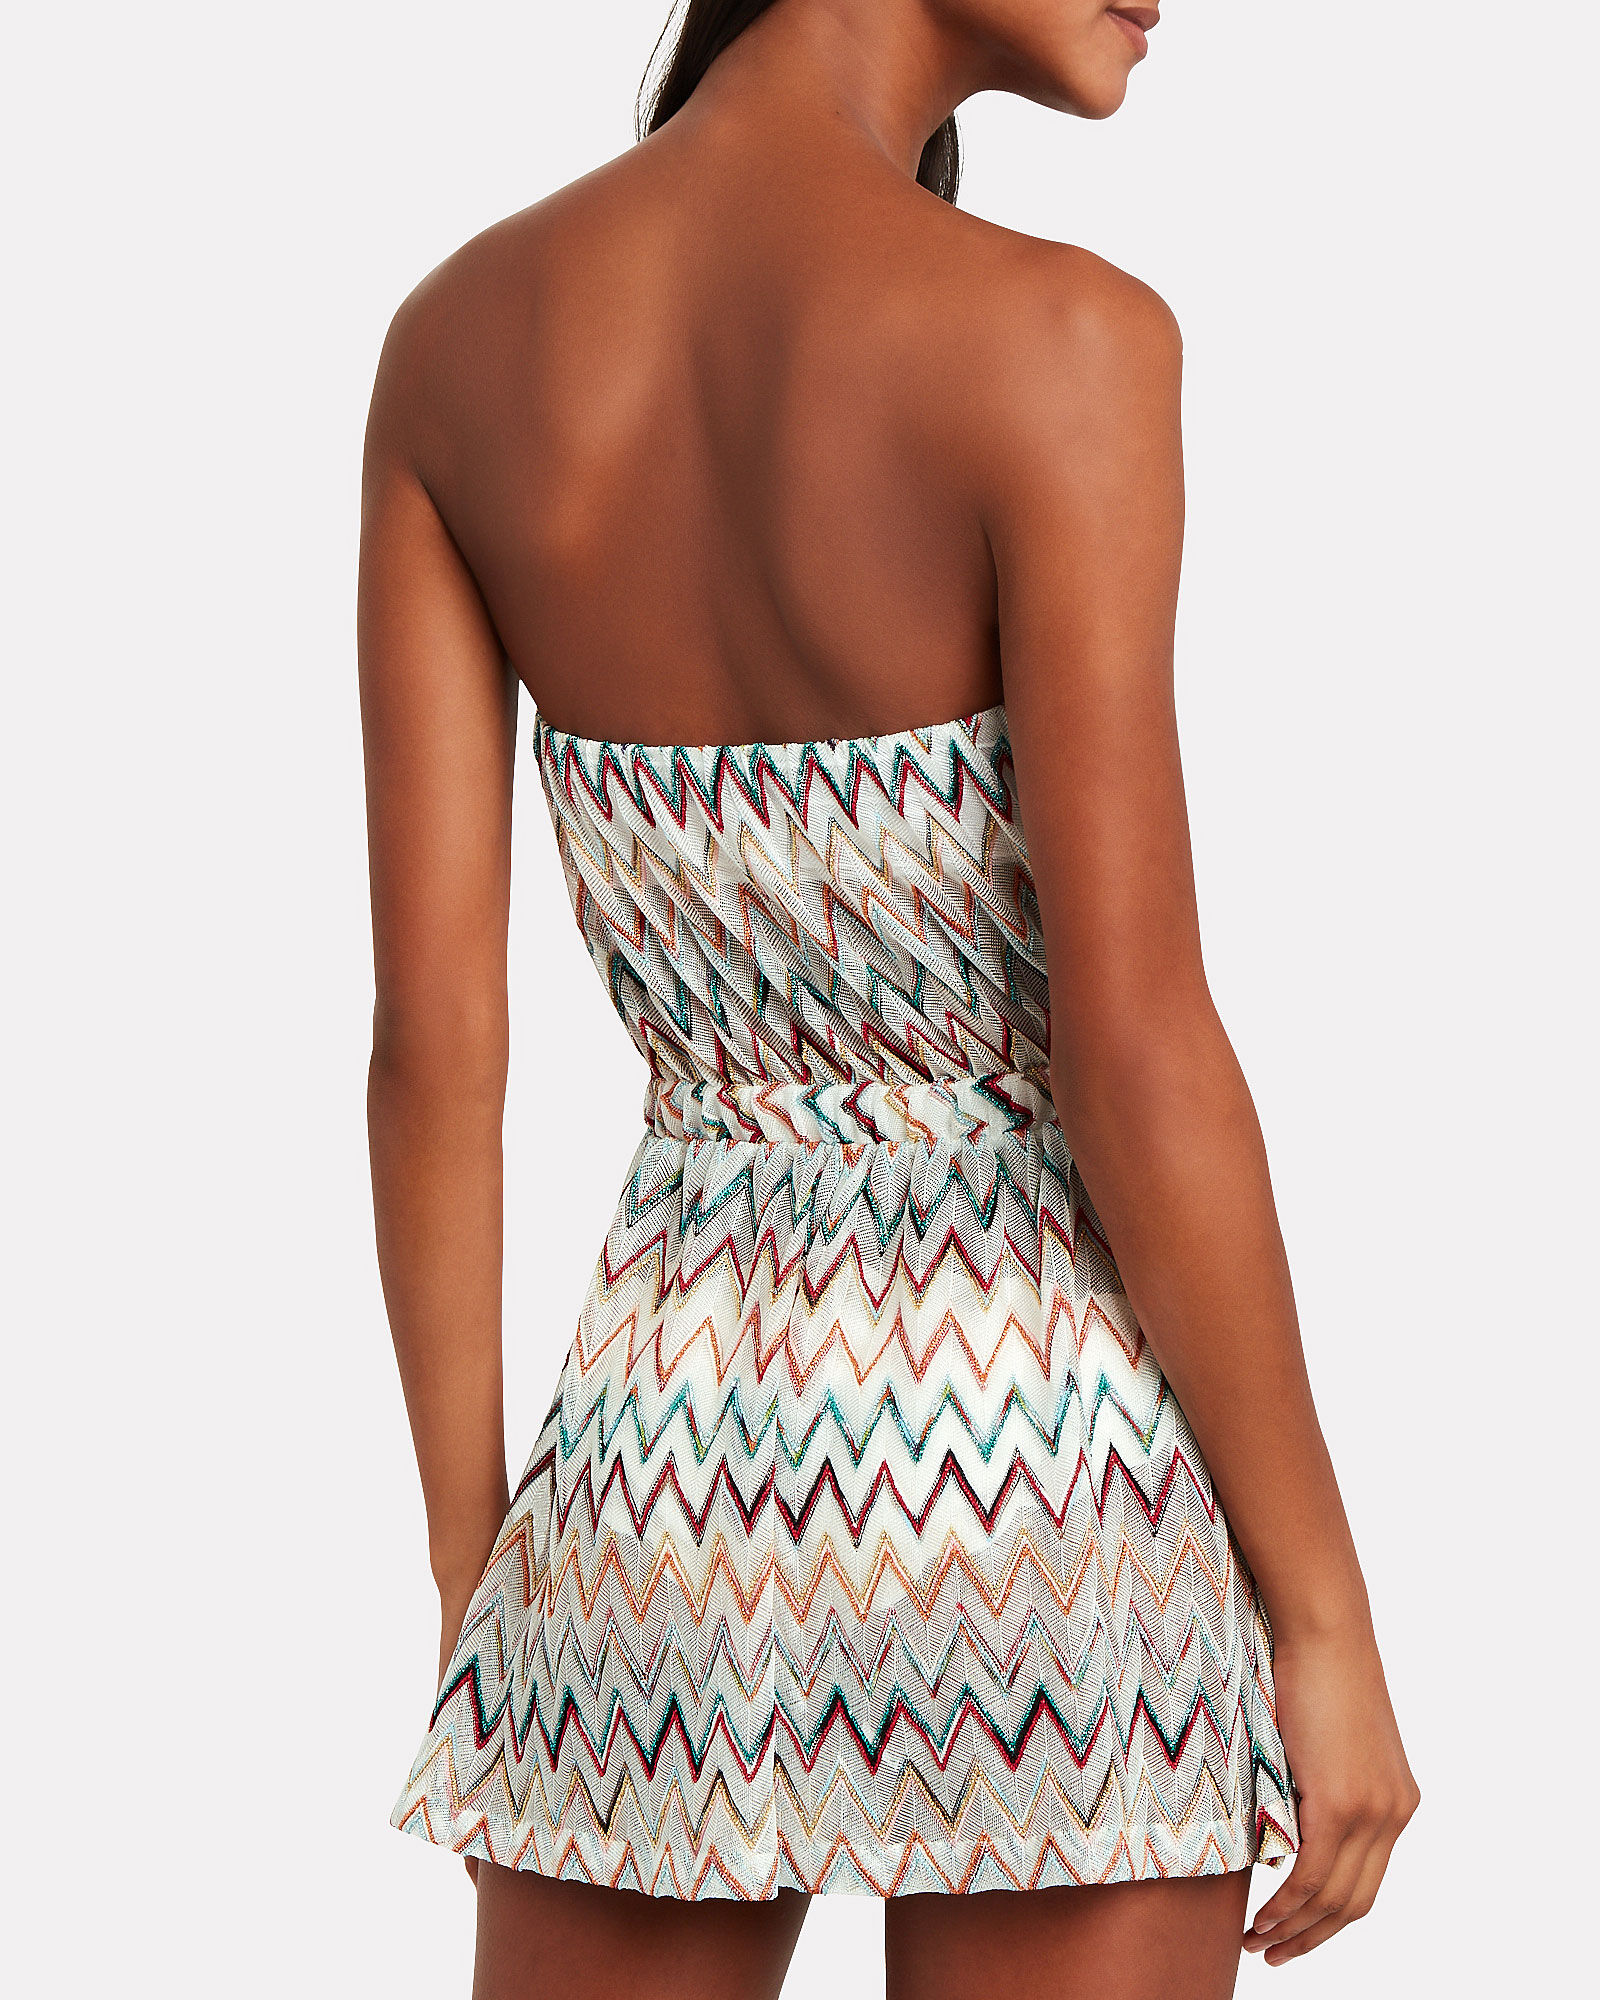 Chevron Knit Strapless Romper, WHITE/RAINBOW, hi-res